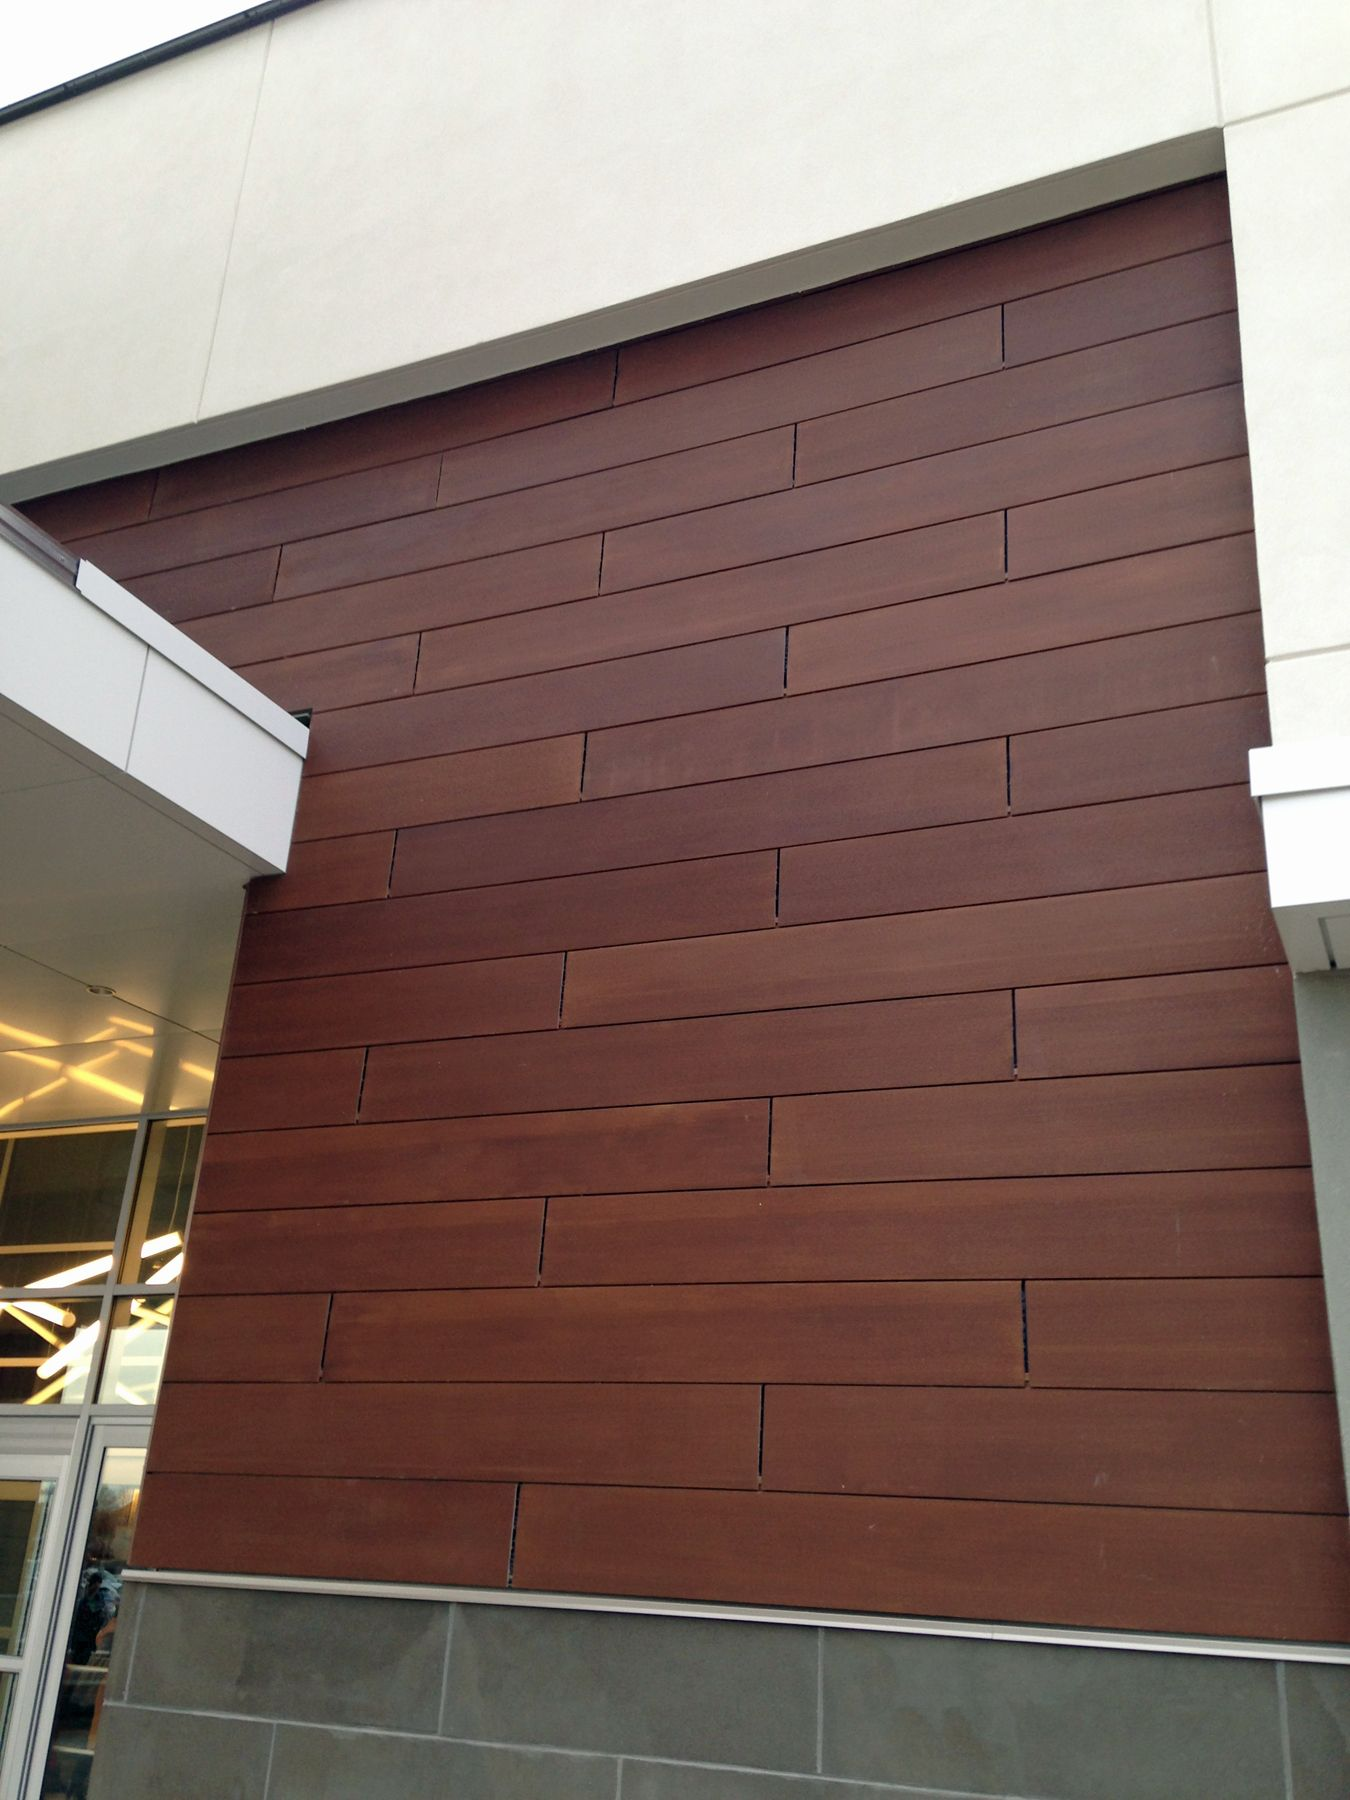 Img 3394 Jpg 1350 1800 Engineered Wood Siding Wood Panel Siding Wood Plastic Composite